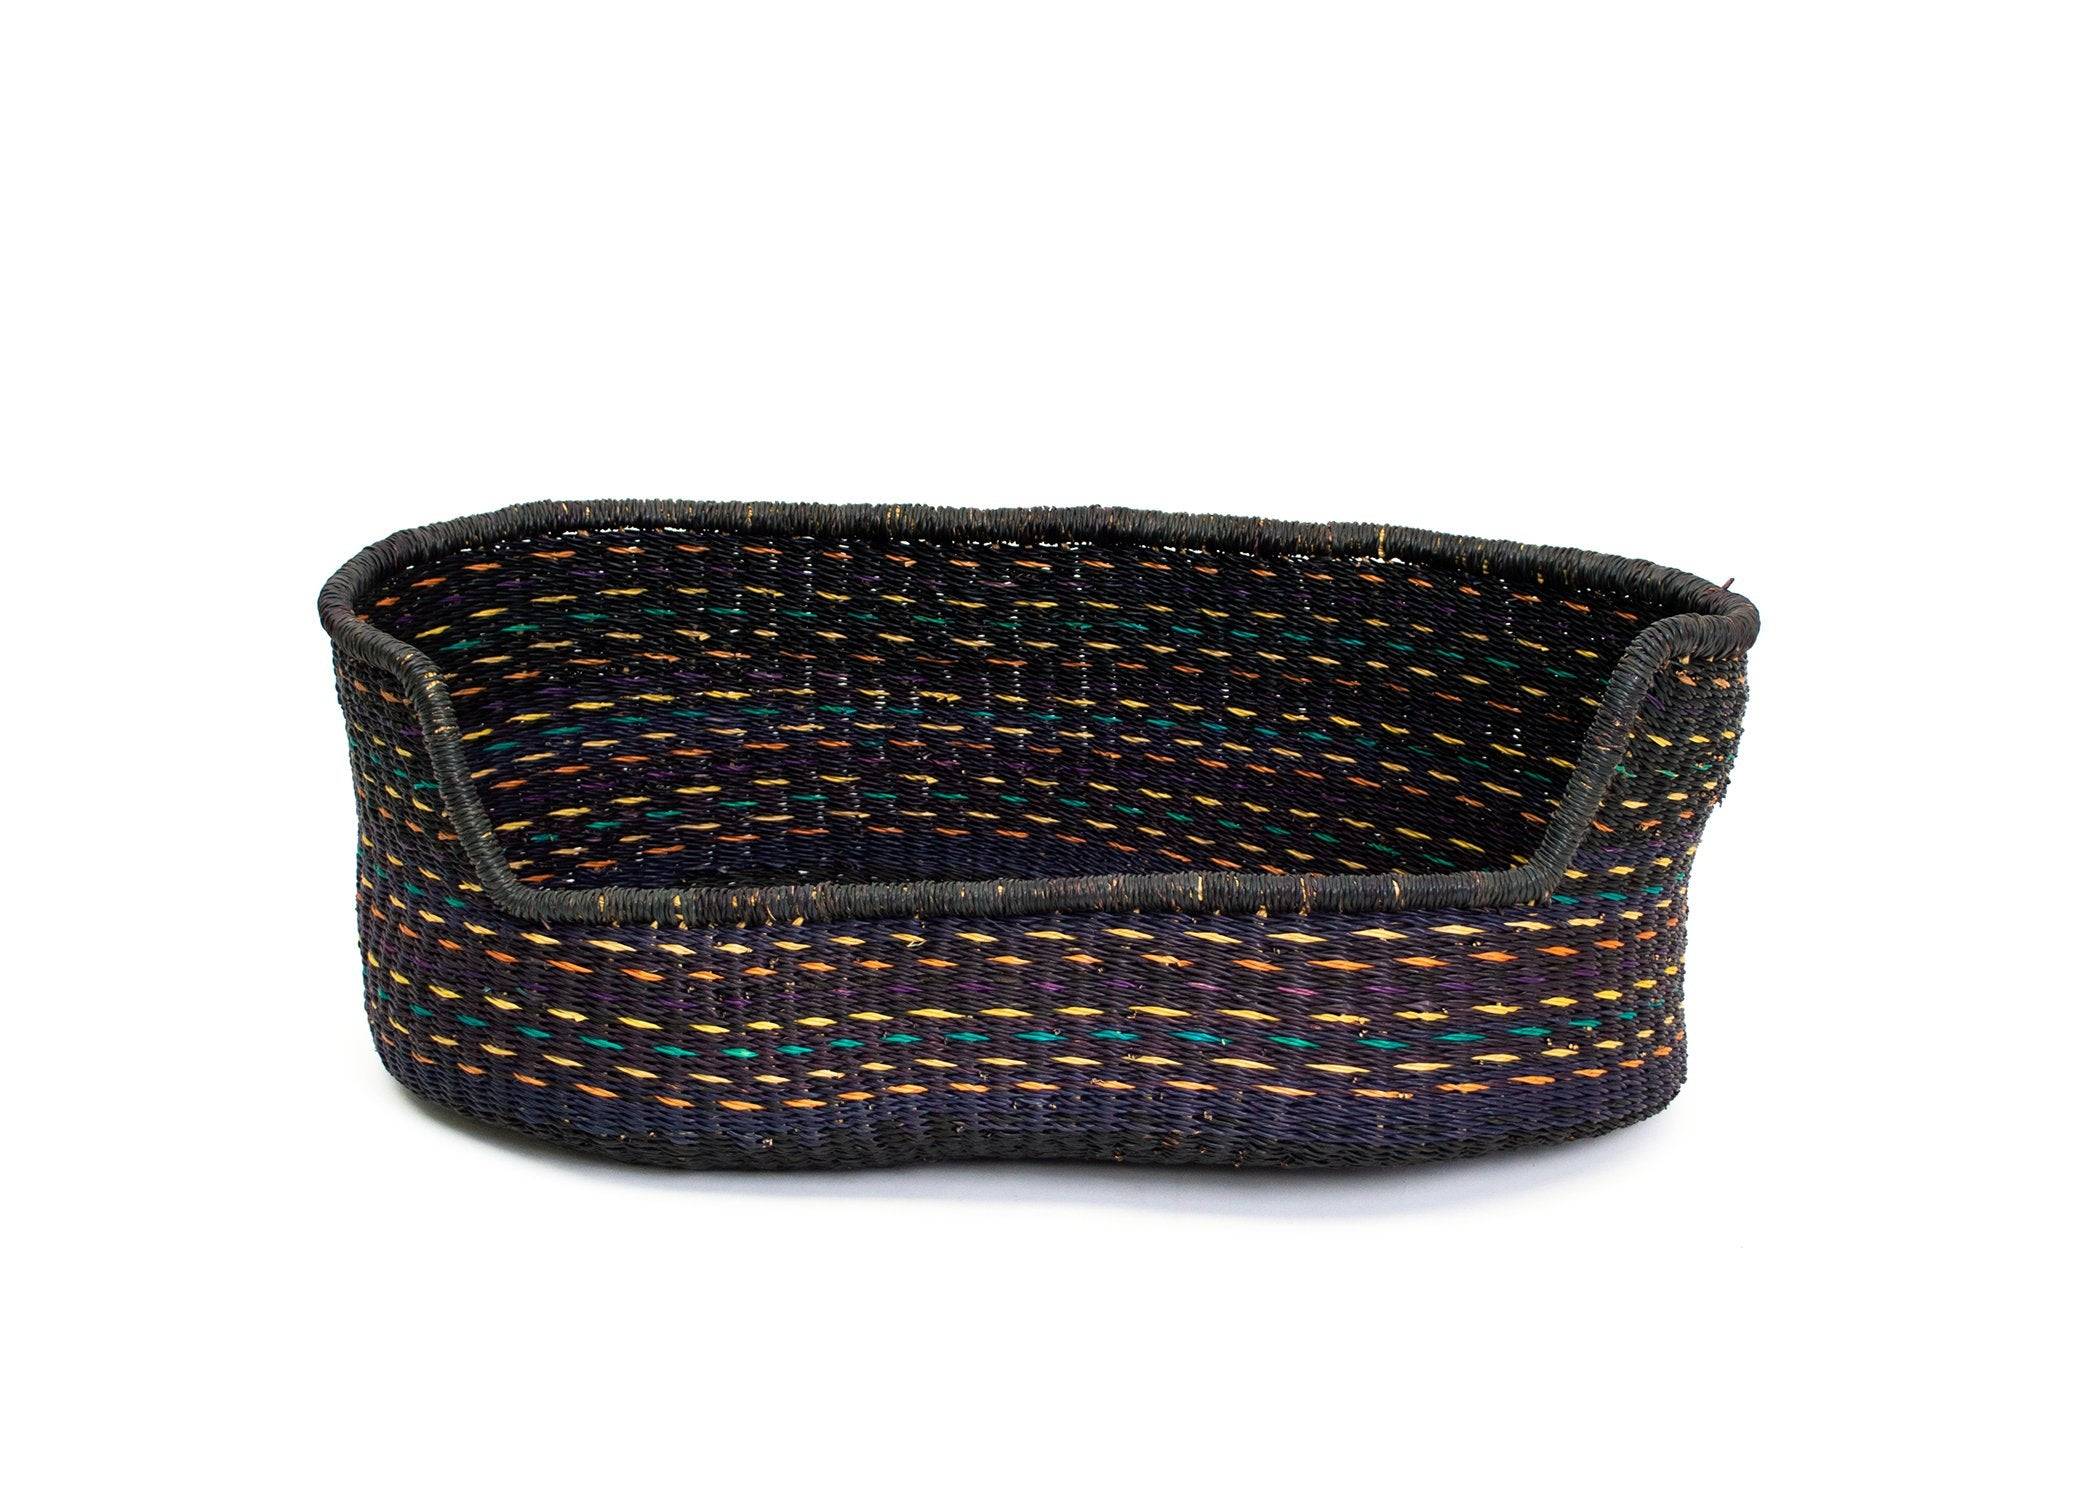 Medium Multicolor Dashed Pet Bed - KAZI - Artisan made high quality home decor and wall art